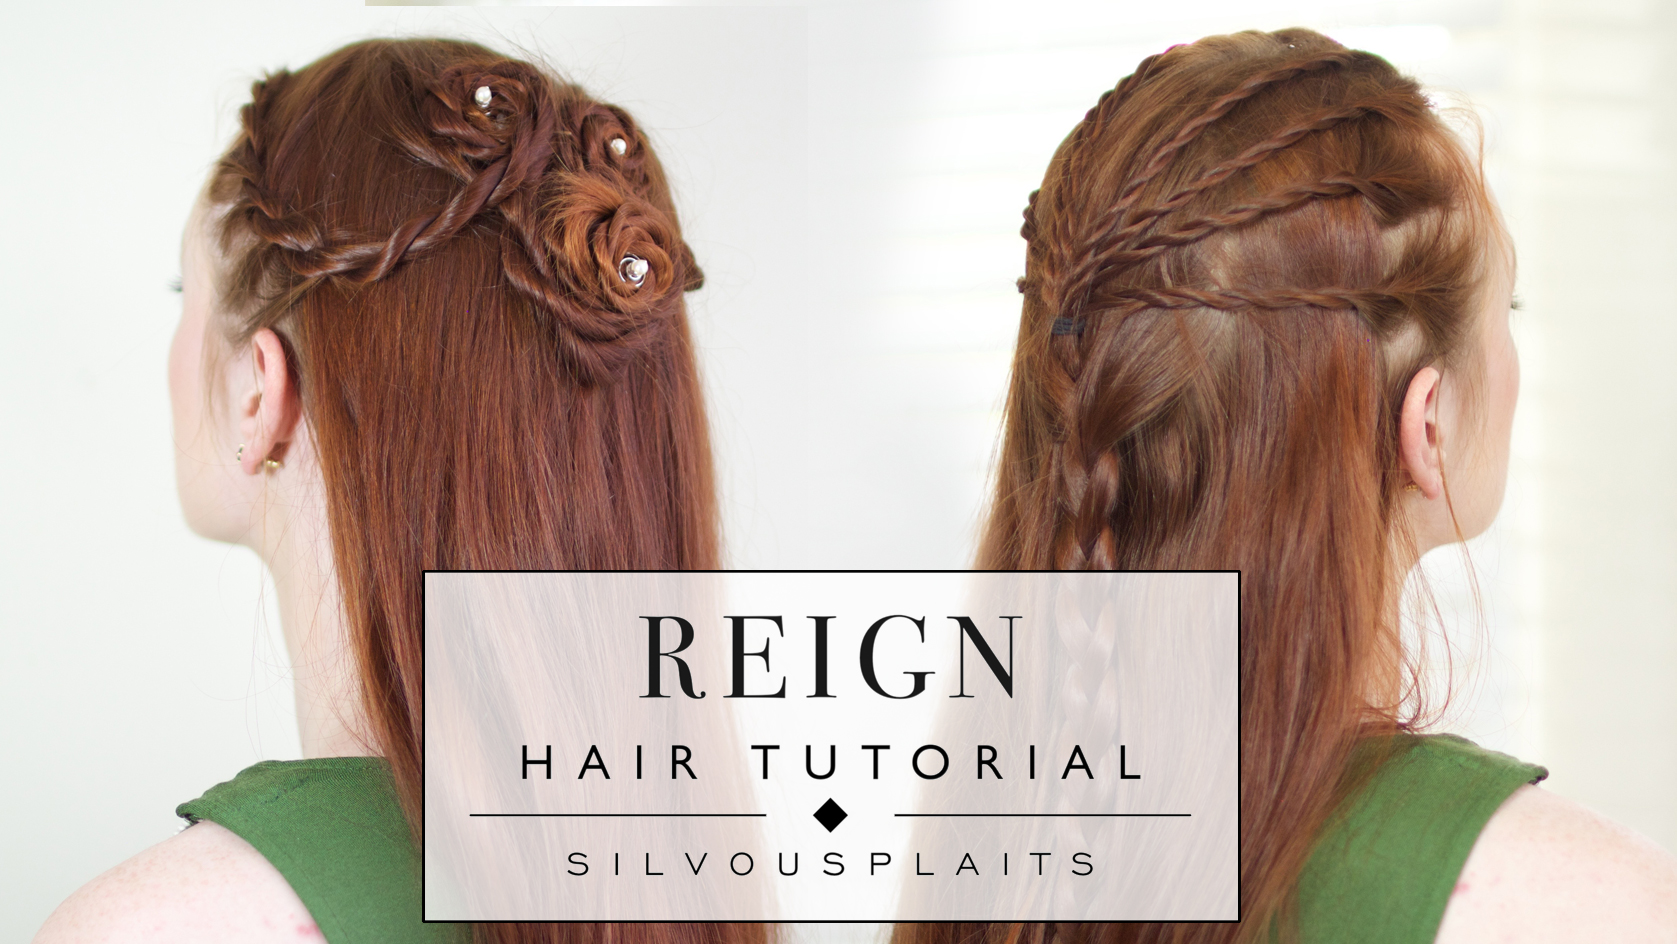 Silvousplaits Hairstyling | Reign Hairstyle Tutorial ...